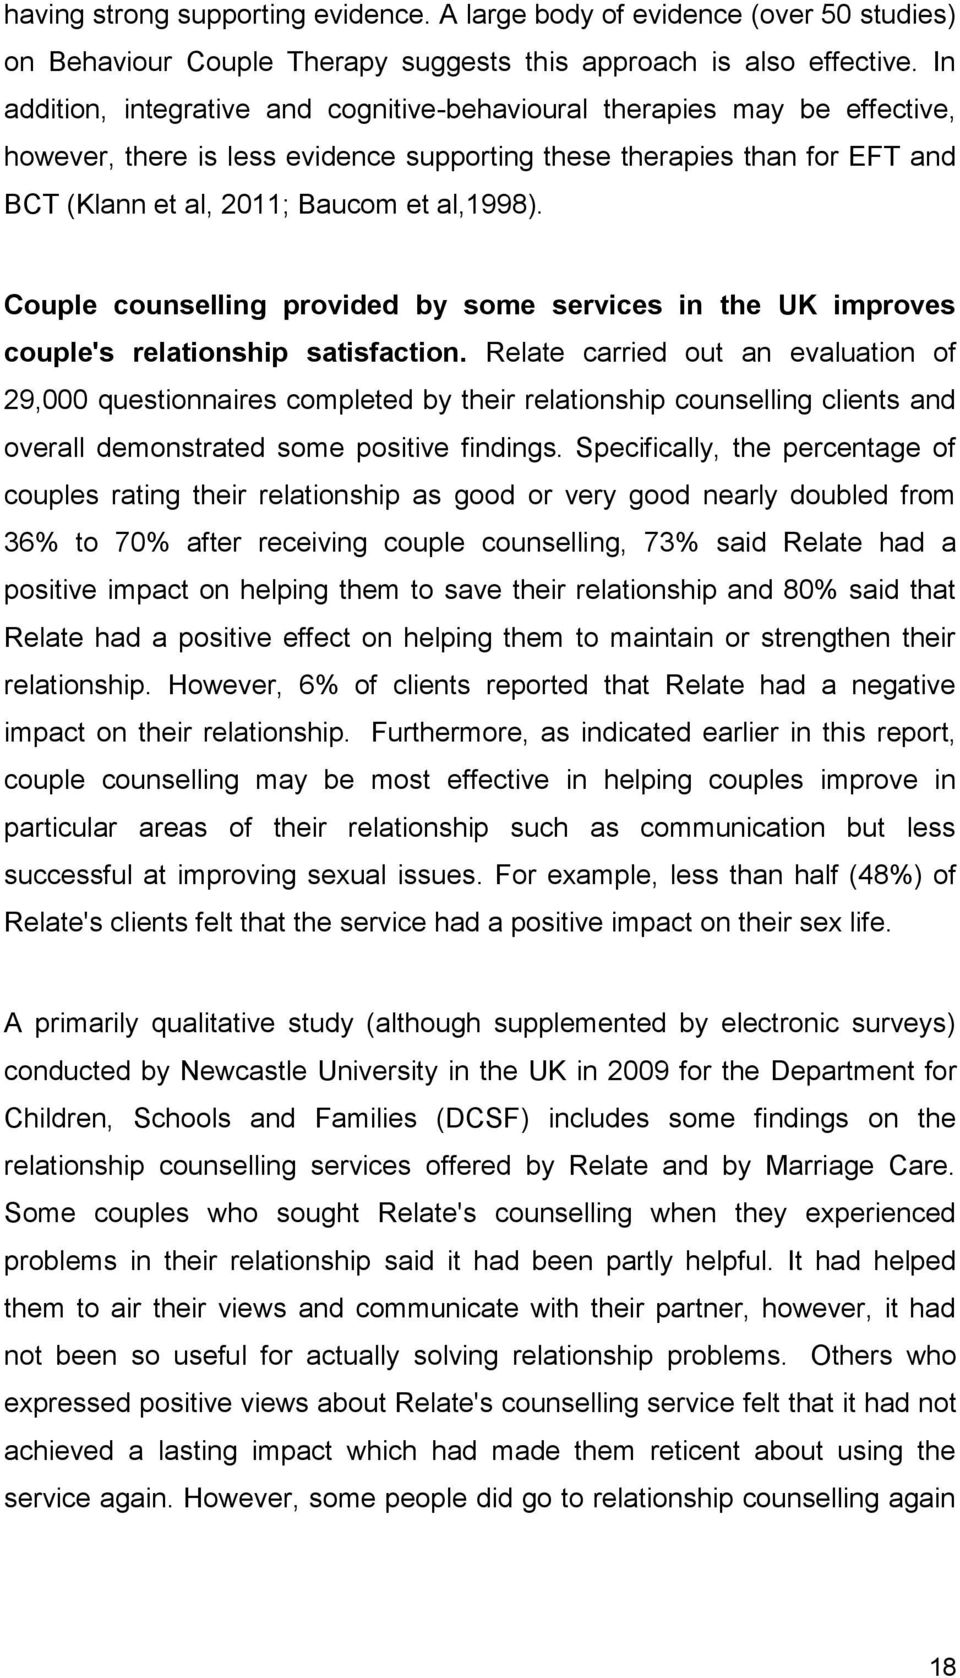 Couple counselling provided by some services in the UK improves couple's relationship satisfaction.